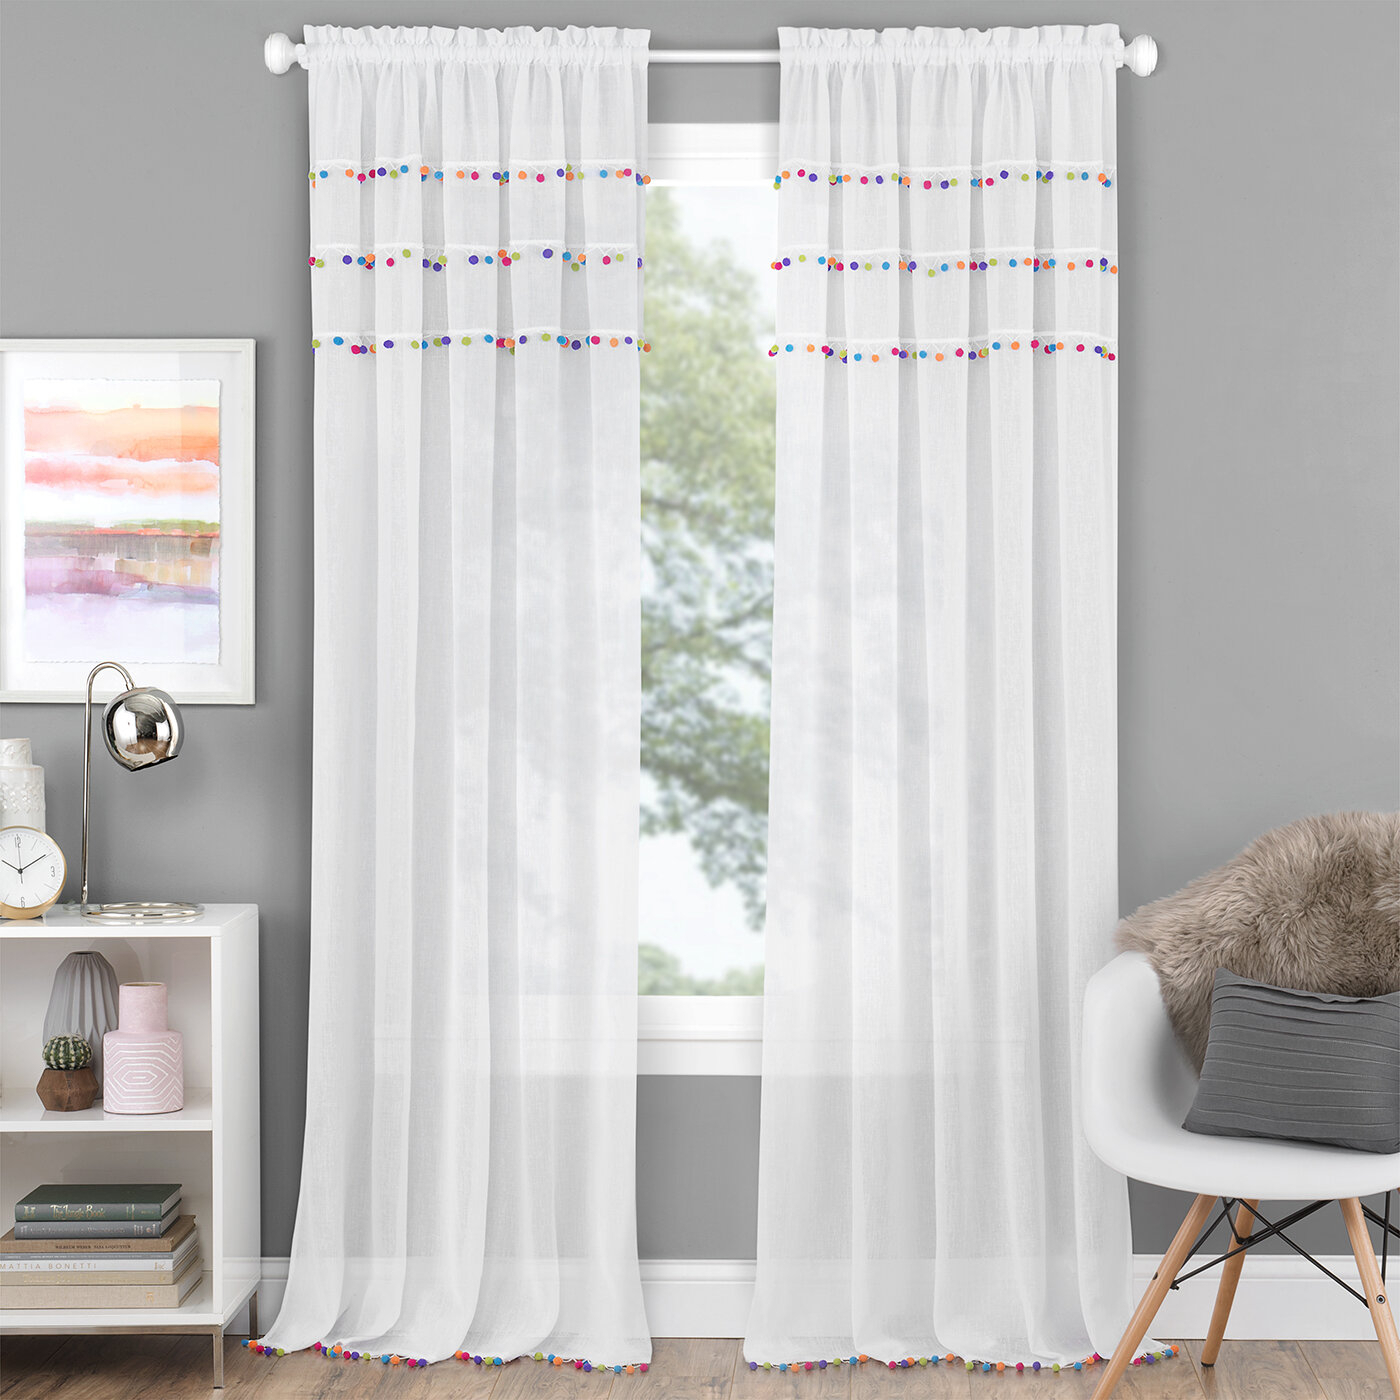 Bungalow Rose Rousey Solid Semi Sheer Rod Pocket Curtain For Kaylee Solid Crushed Sheer Window Curtain Pairs (View 10 of 20)